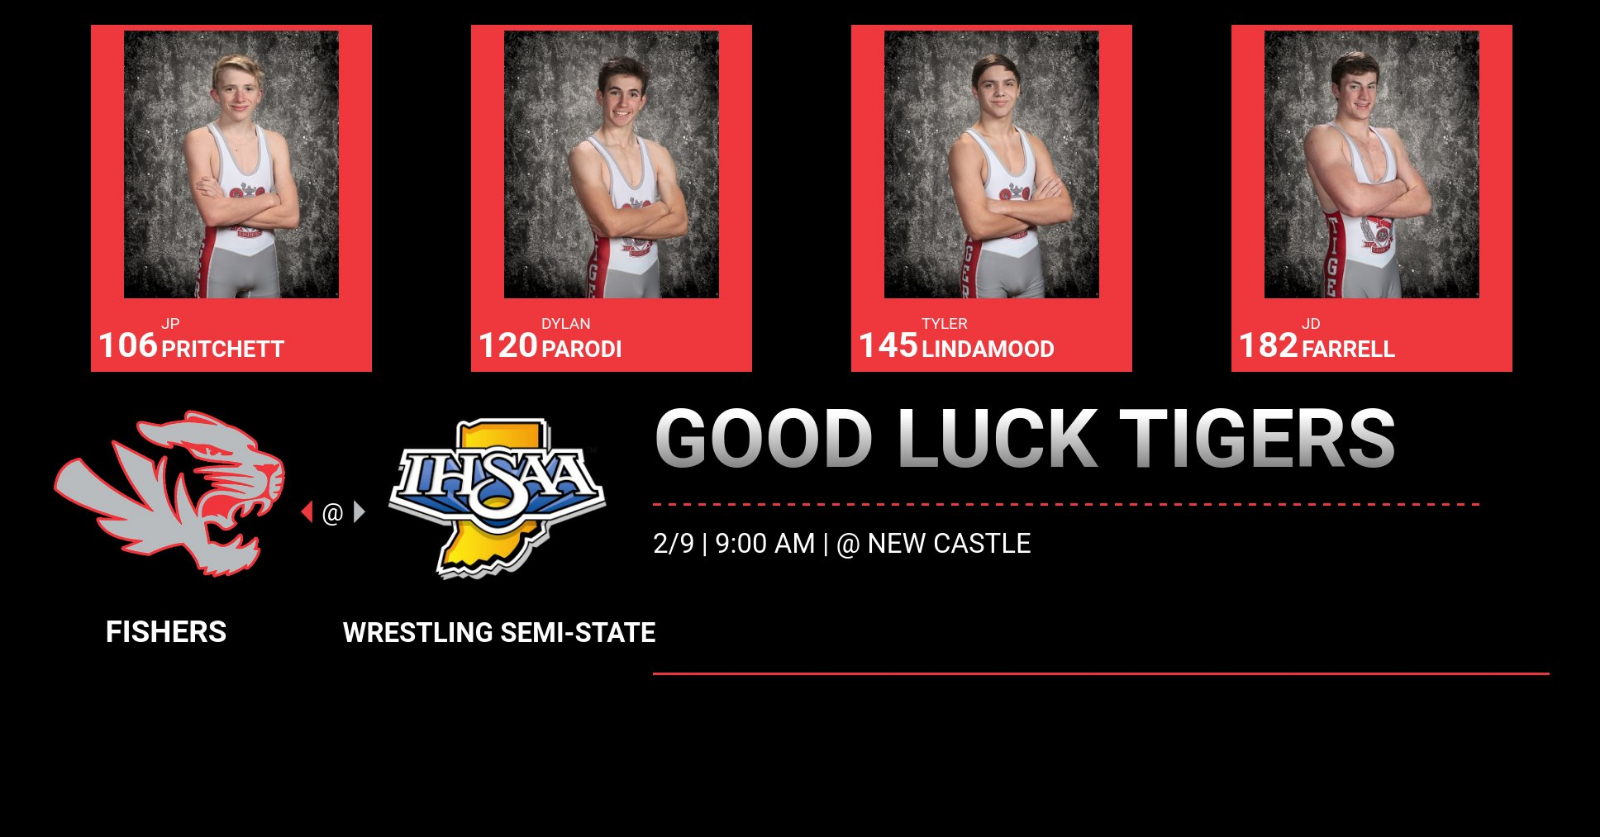 Wrestling @IHSAA1 Semi-State Information